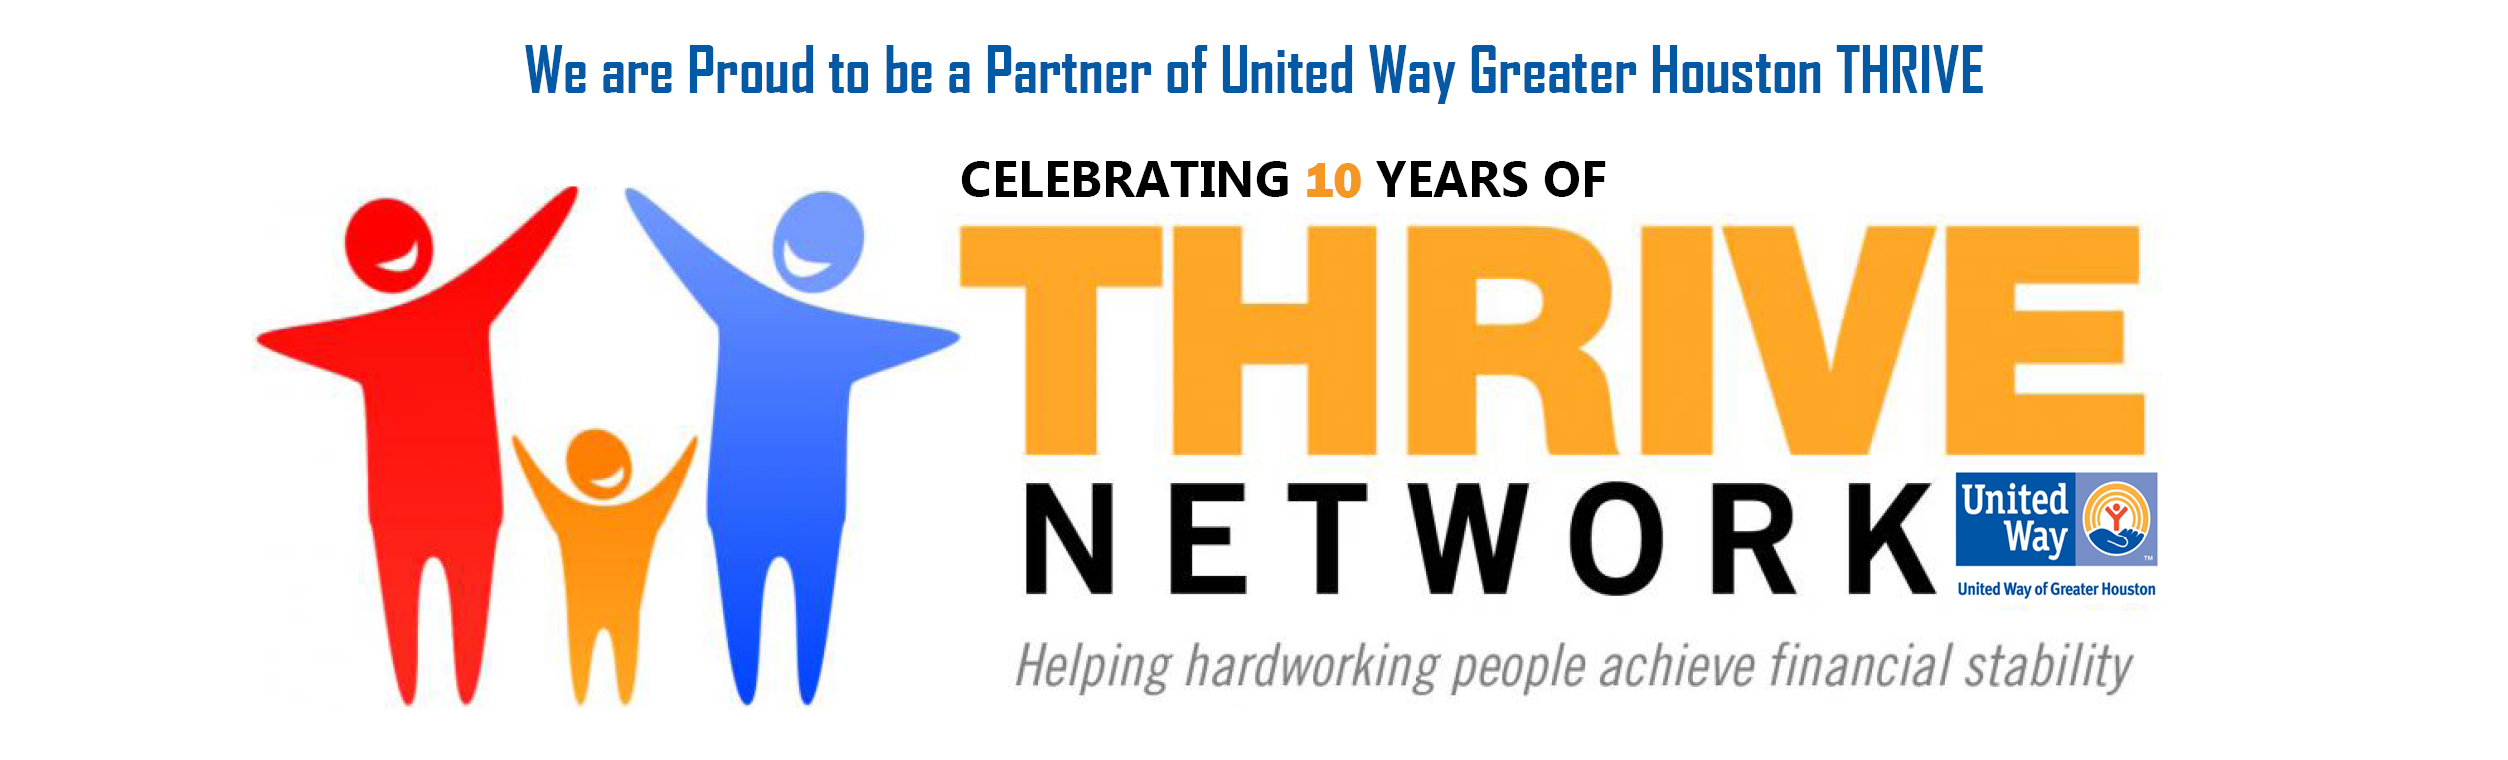 United Way Greater Houston THRIVE